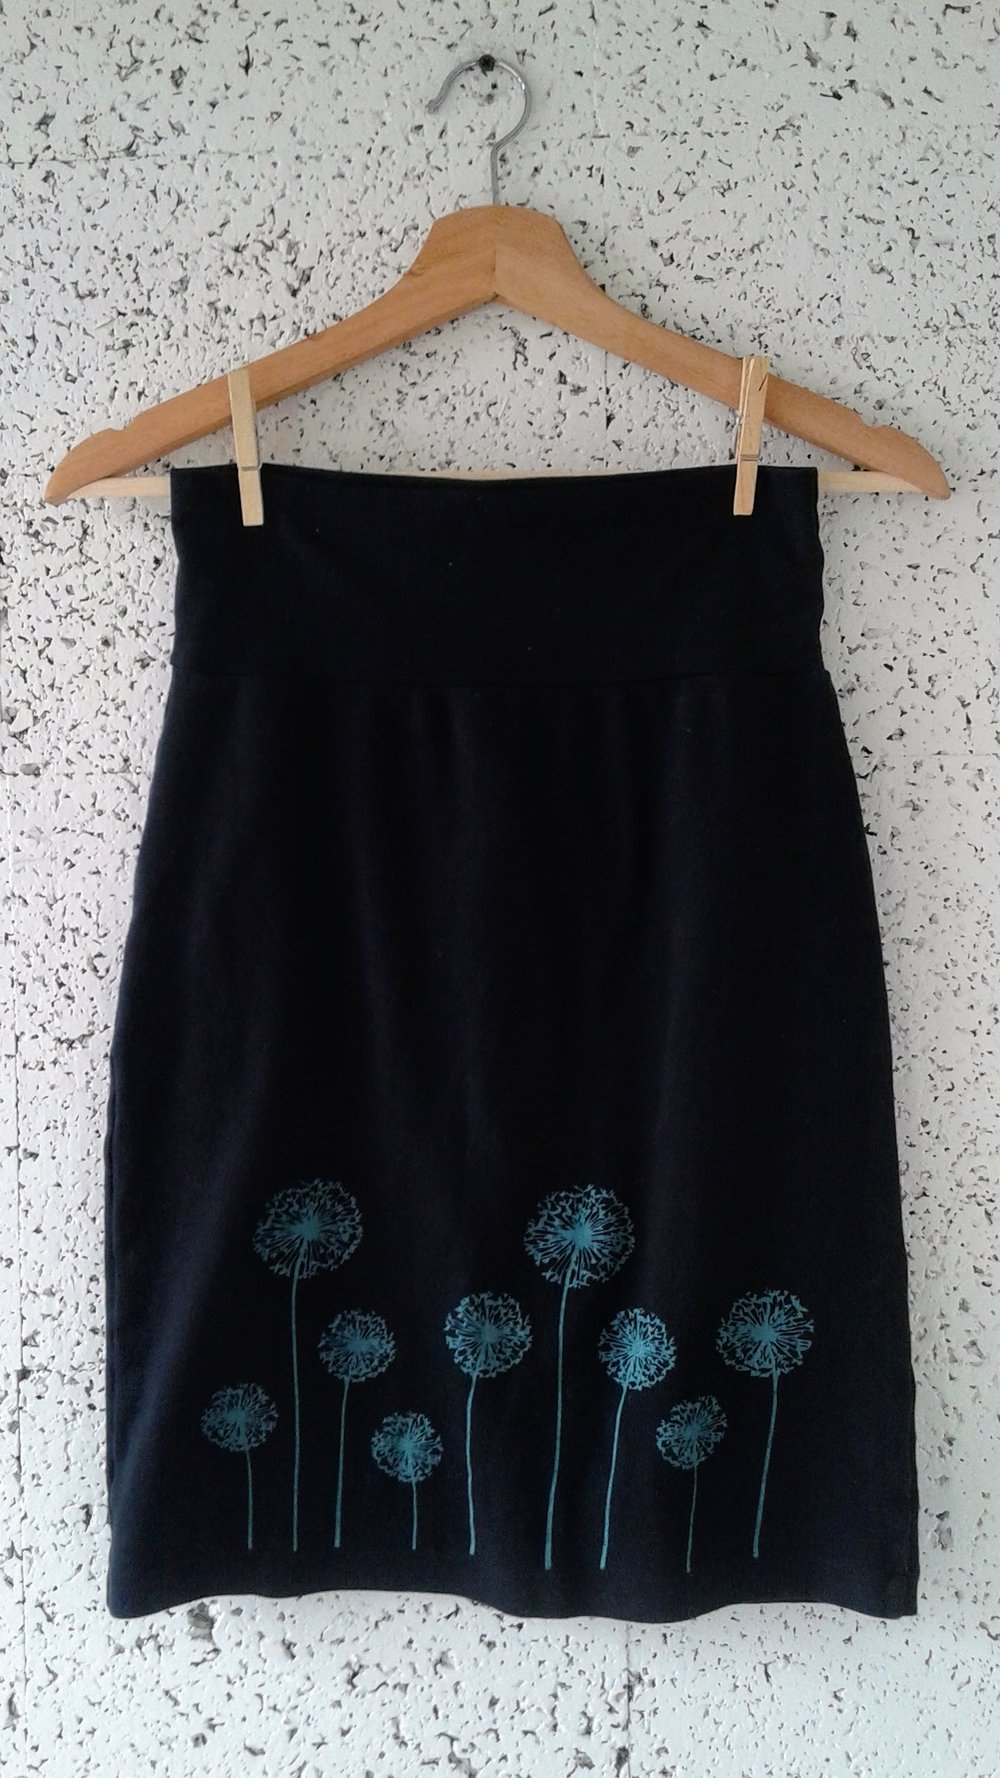 Revival Ink skirt; Size S, $18